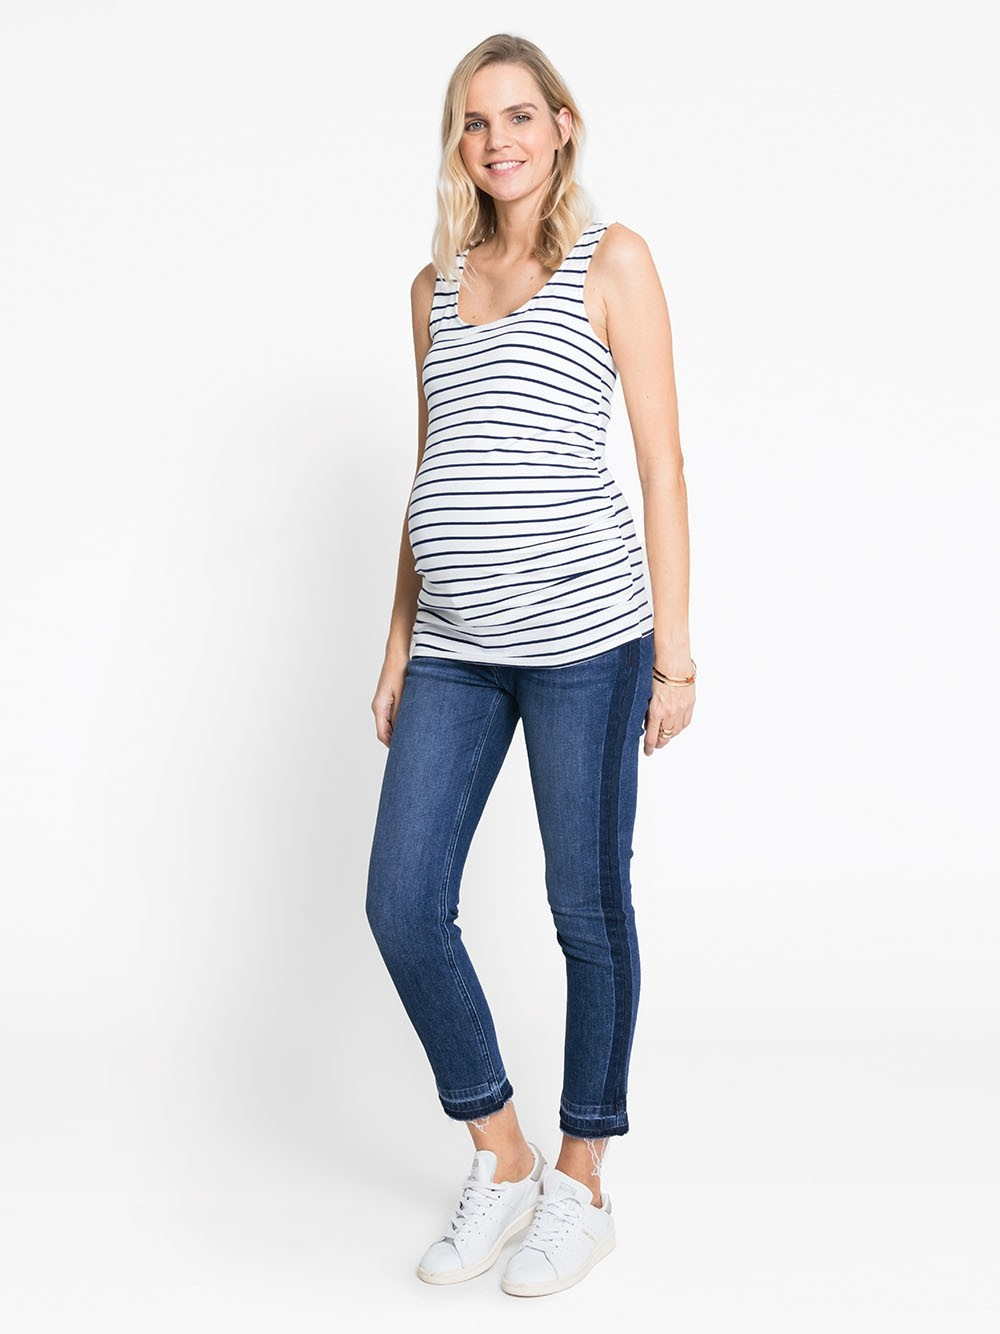 Ethical Maternity Jeans from Jojo Maman Bebe